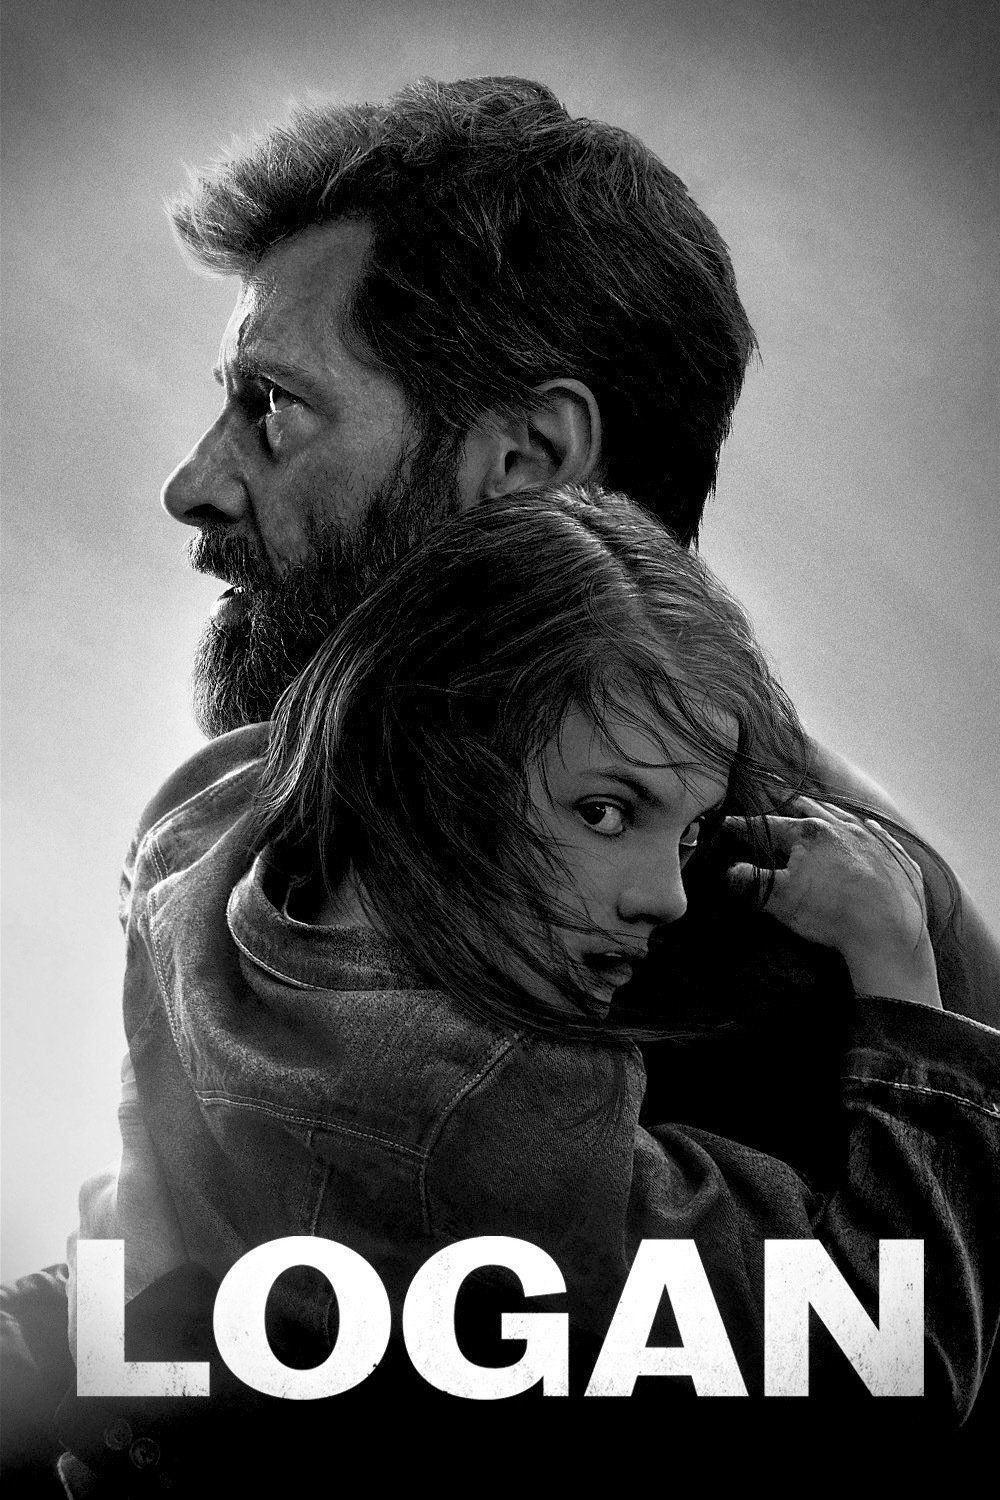 Logan Watch And Download Logan Free 1080 Px Watch All English Movie Logan Movies Full Movies Online Free Free Movies Online